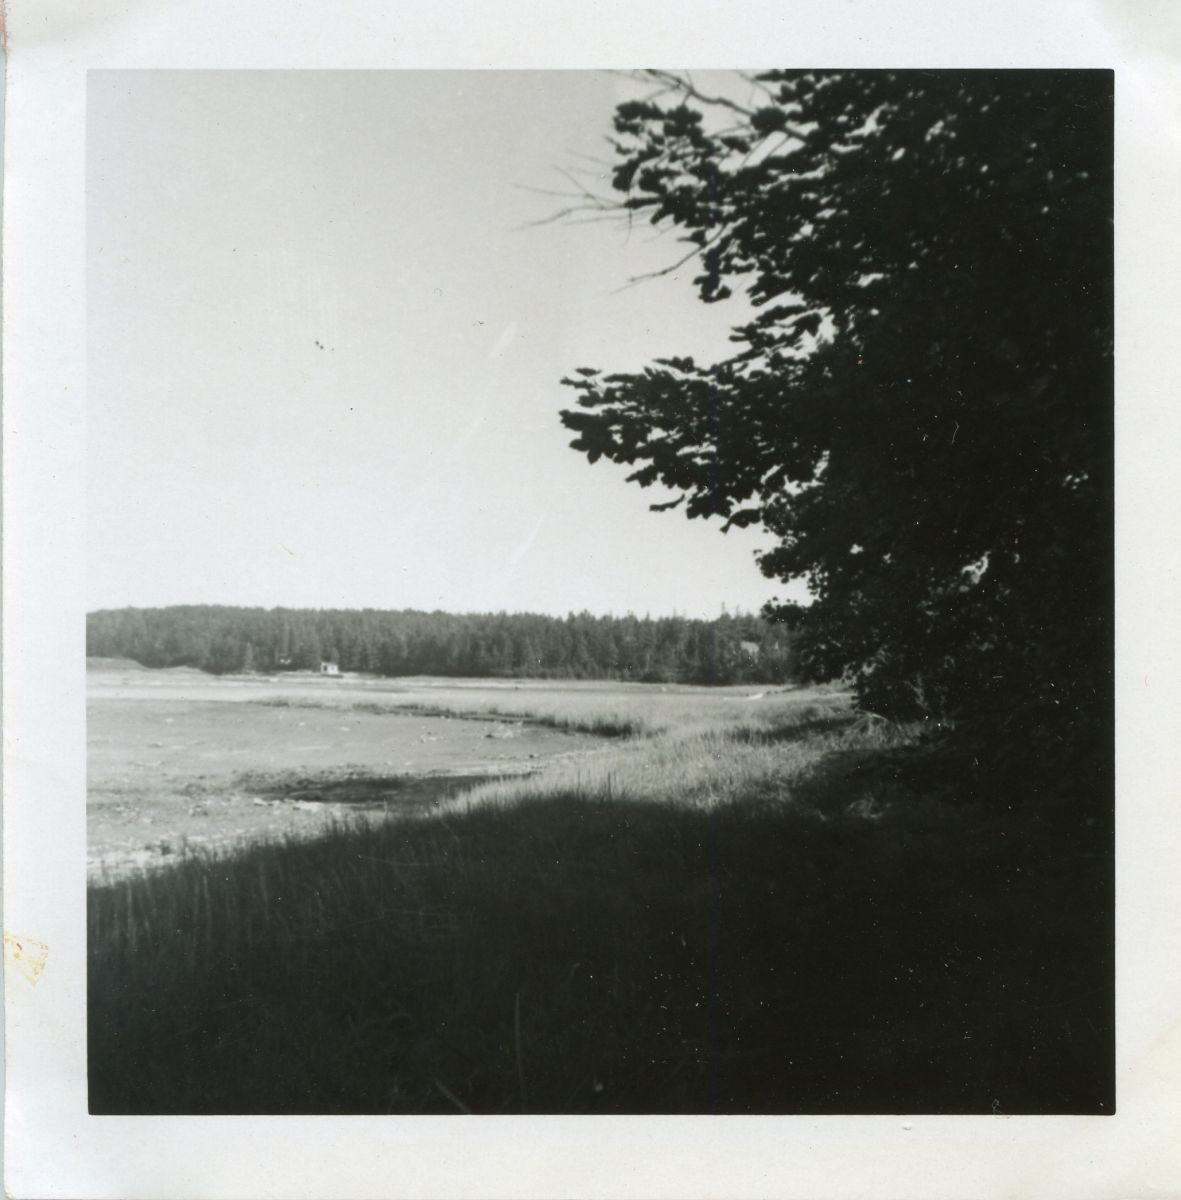 View of Norwood Cove from The Charlotte Rhoades House